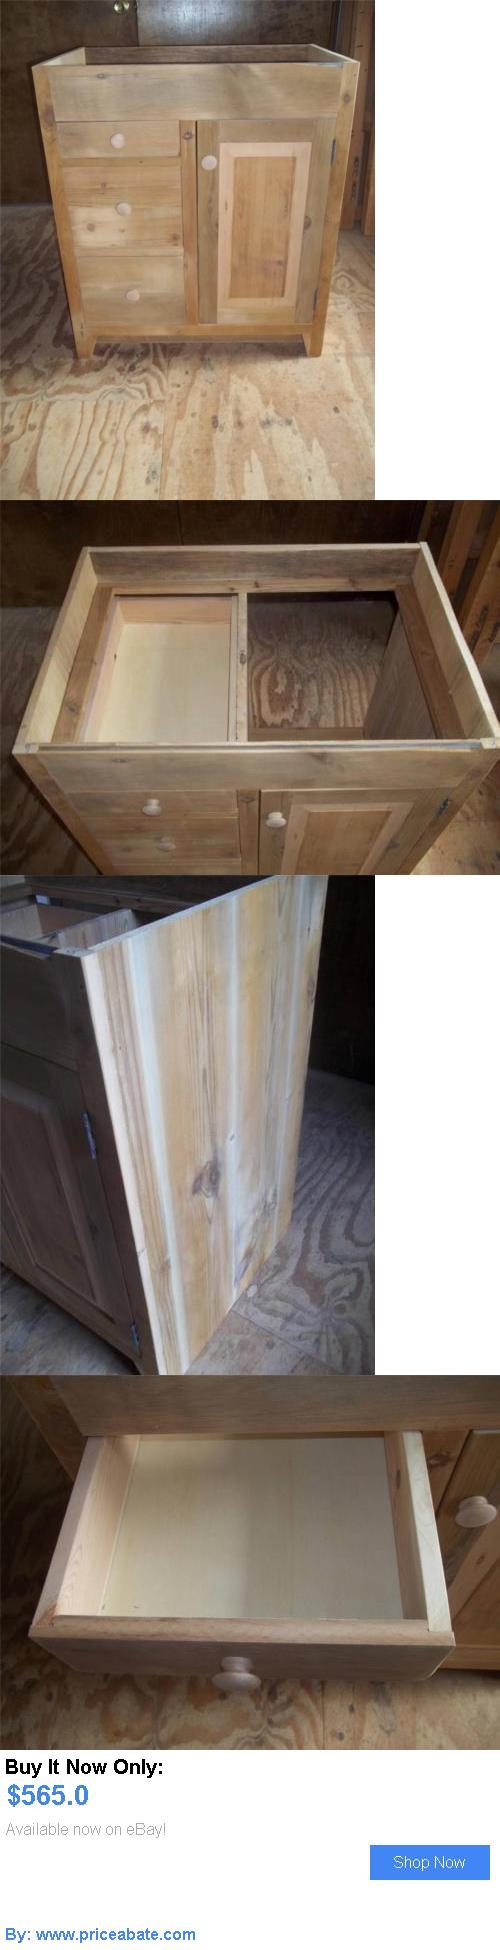 48 Quot Unfinished Mission Hardwood Vanity For Undermount Sink 7 Drawers - Antiques antique amish built unfinished reclaimed barn wood bathroom vanity cabinets buy it now only